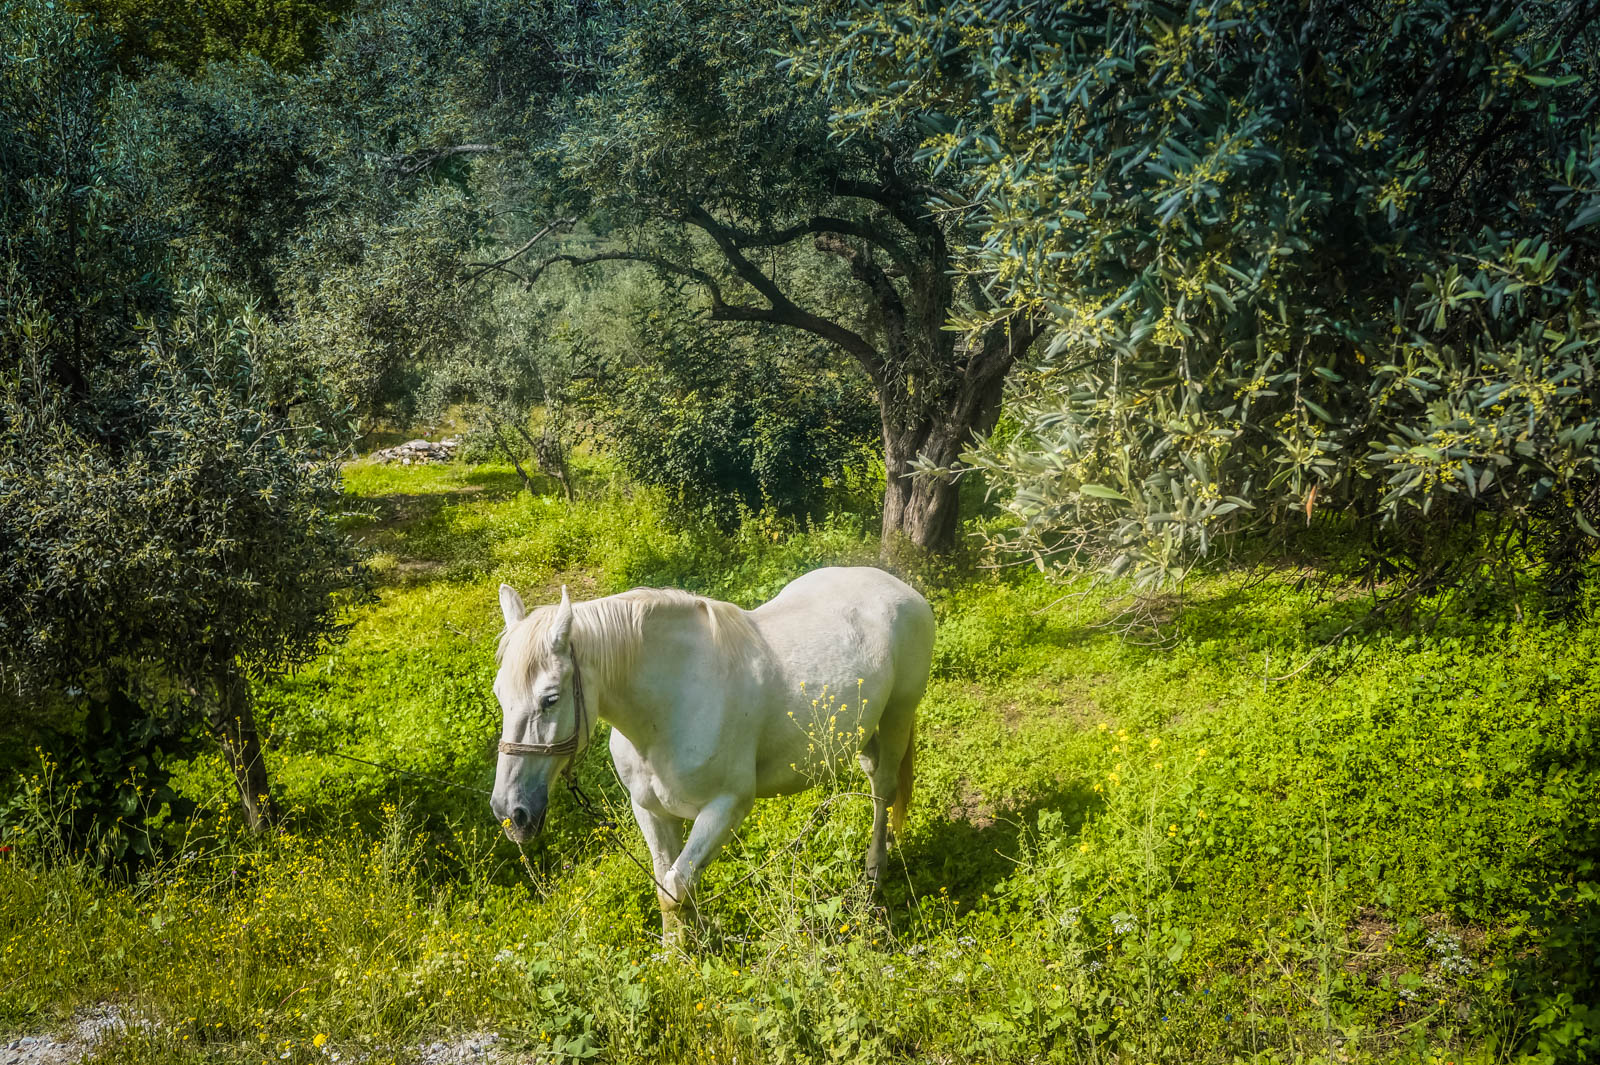 horseback-riding-pelion-greece-la-vie-en-blog-all-rights-reserved-11